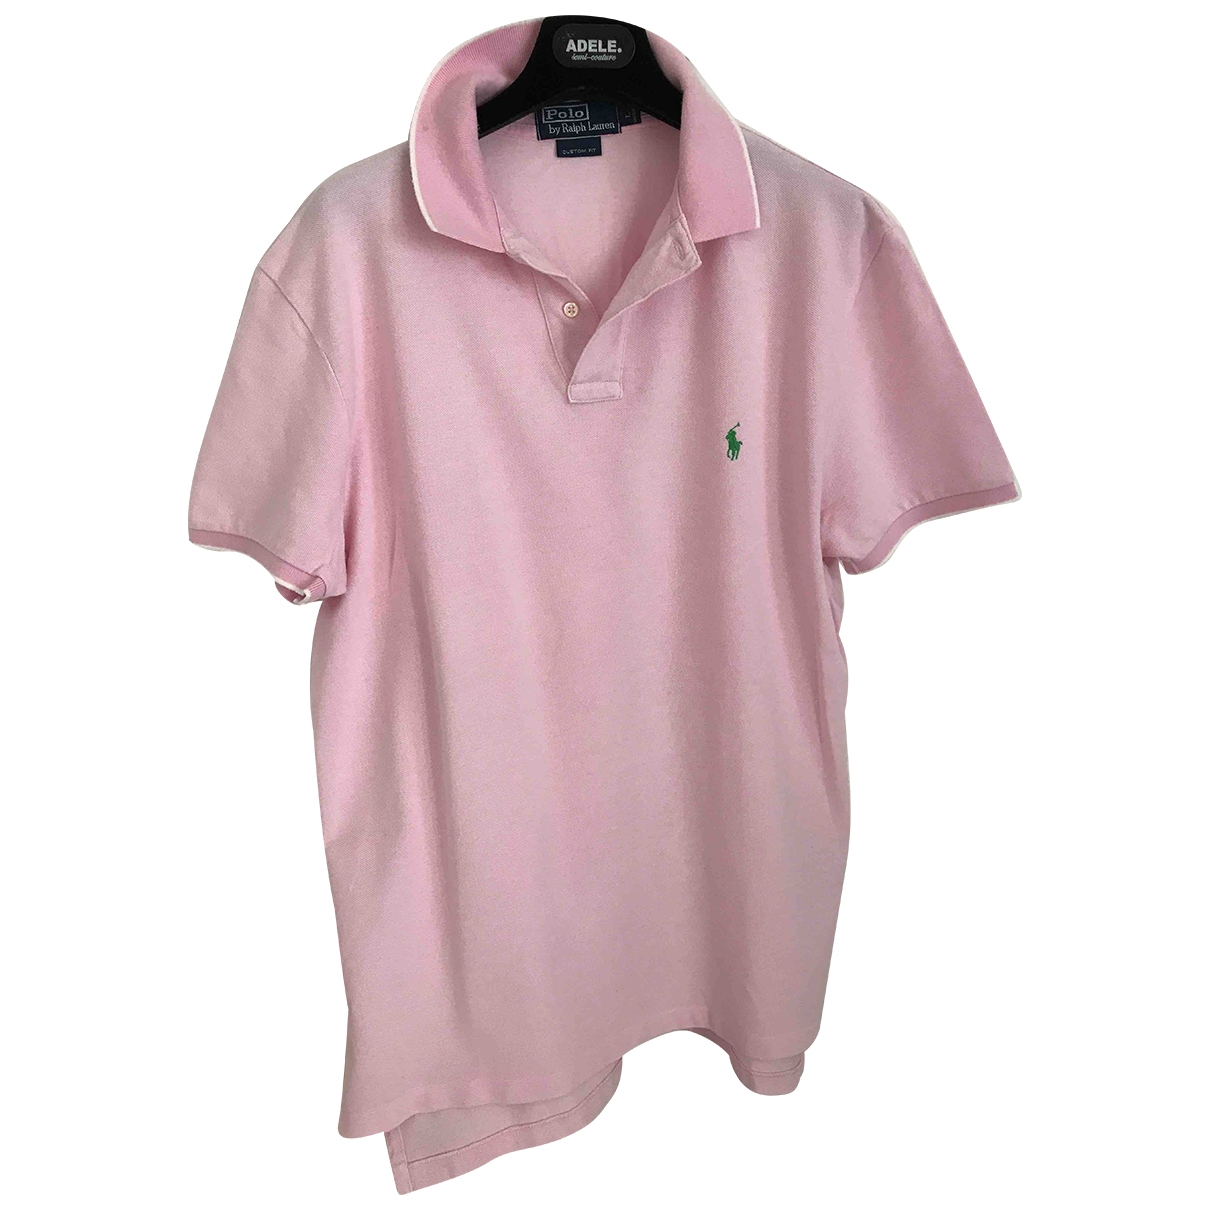 Polo Ralph Lauren \N Pink Cotton Polo shirts for Men L International